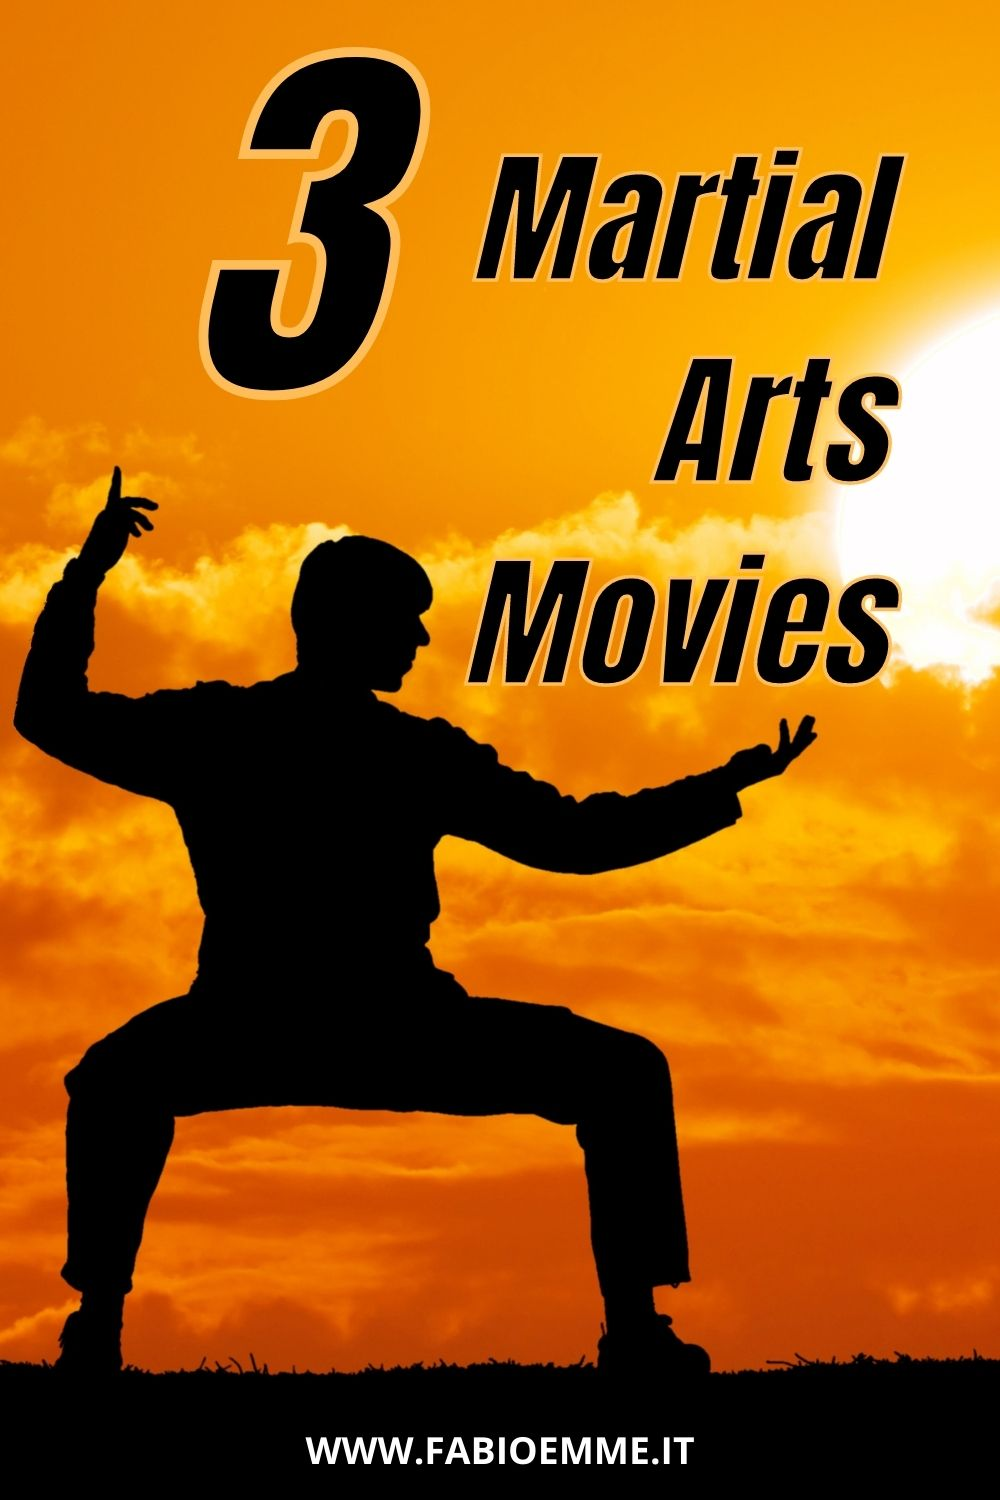 Looking for some good combat and also a smart movie to watch? 3 Martial Arts Movies you may have missed over the years. #MOVIES